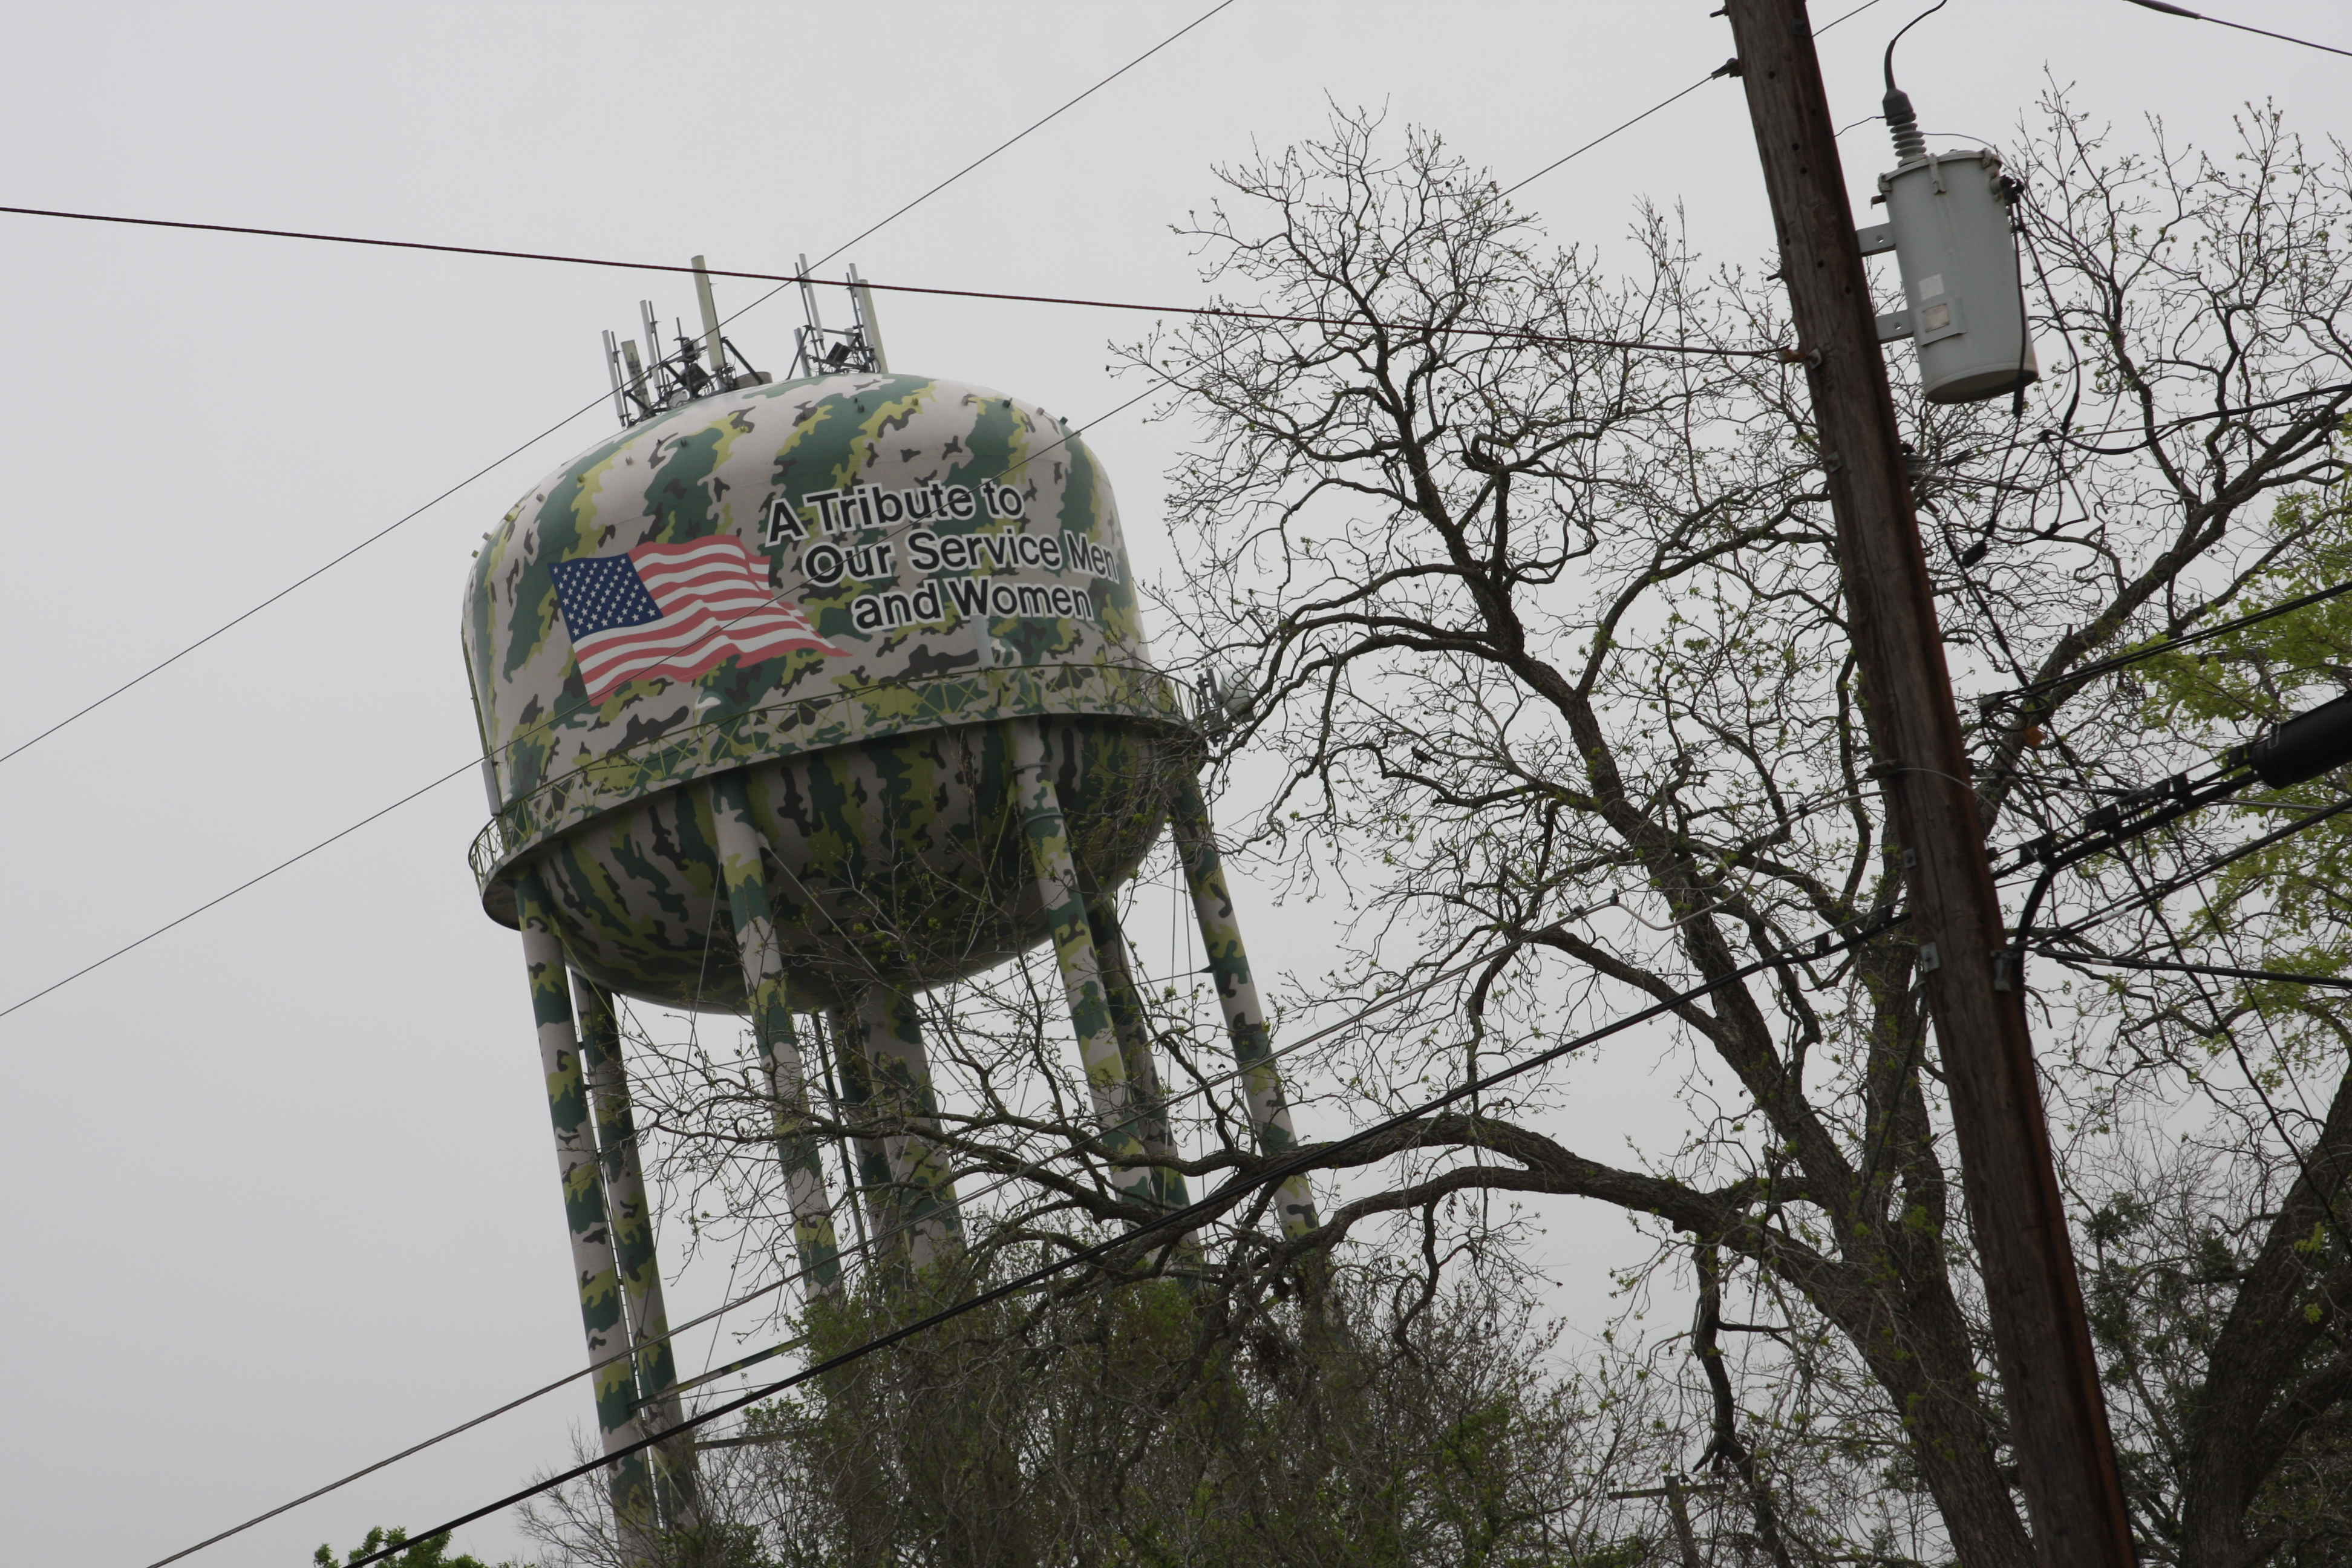 A patriotic water tower in a Texas town.